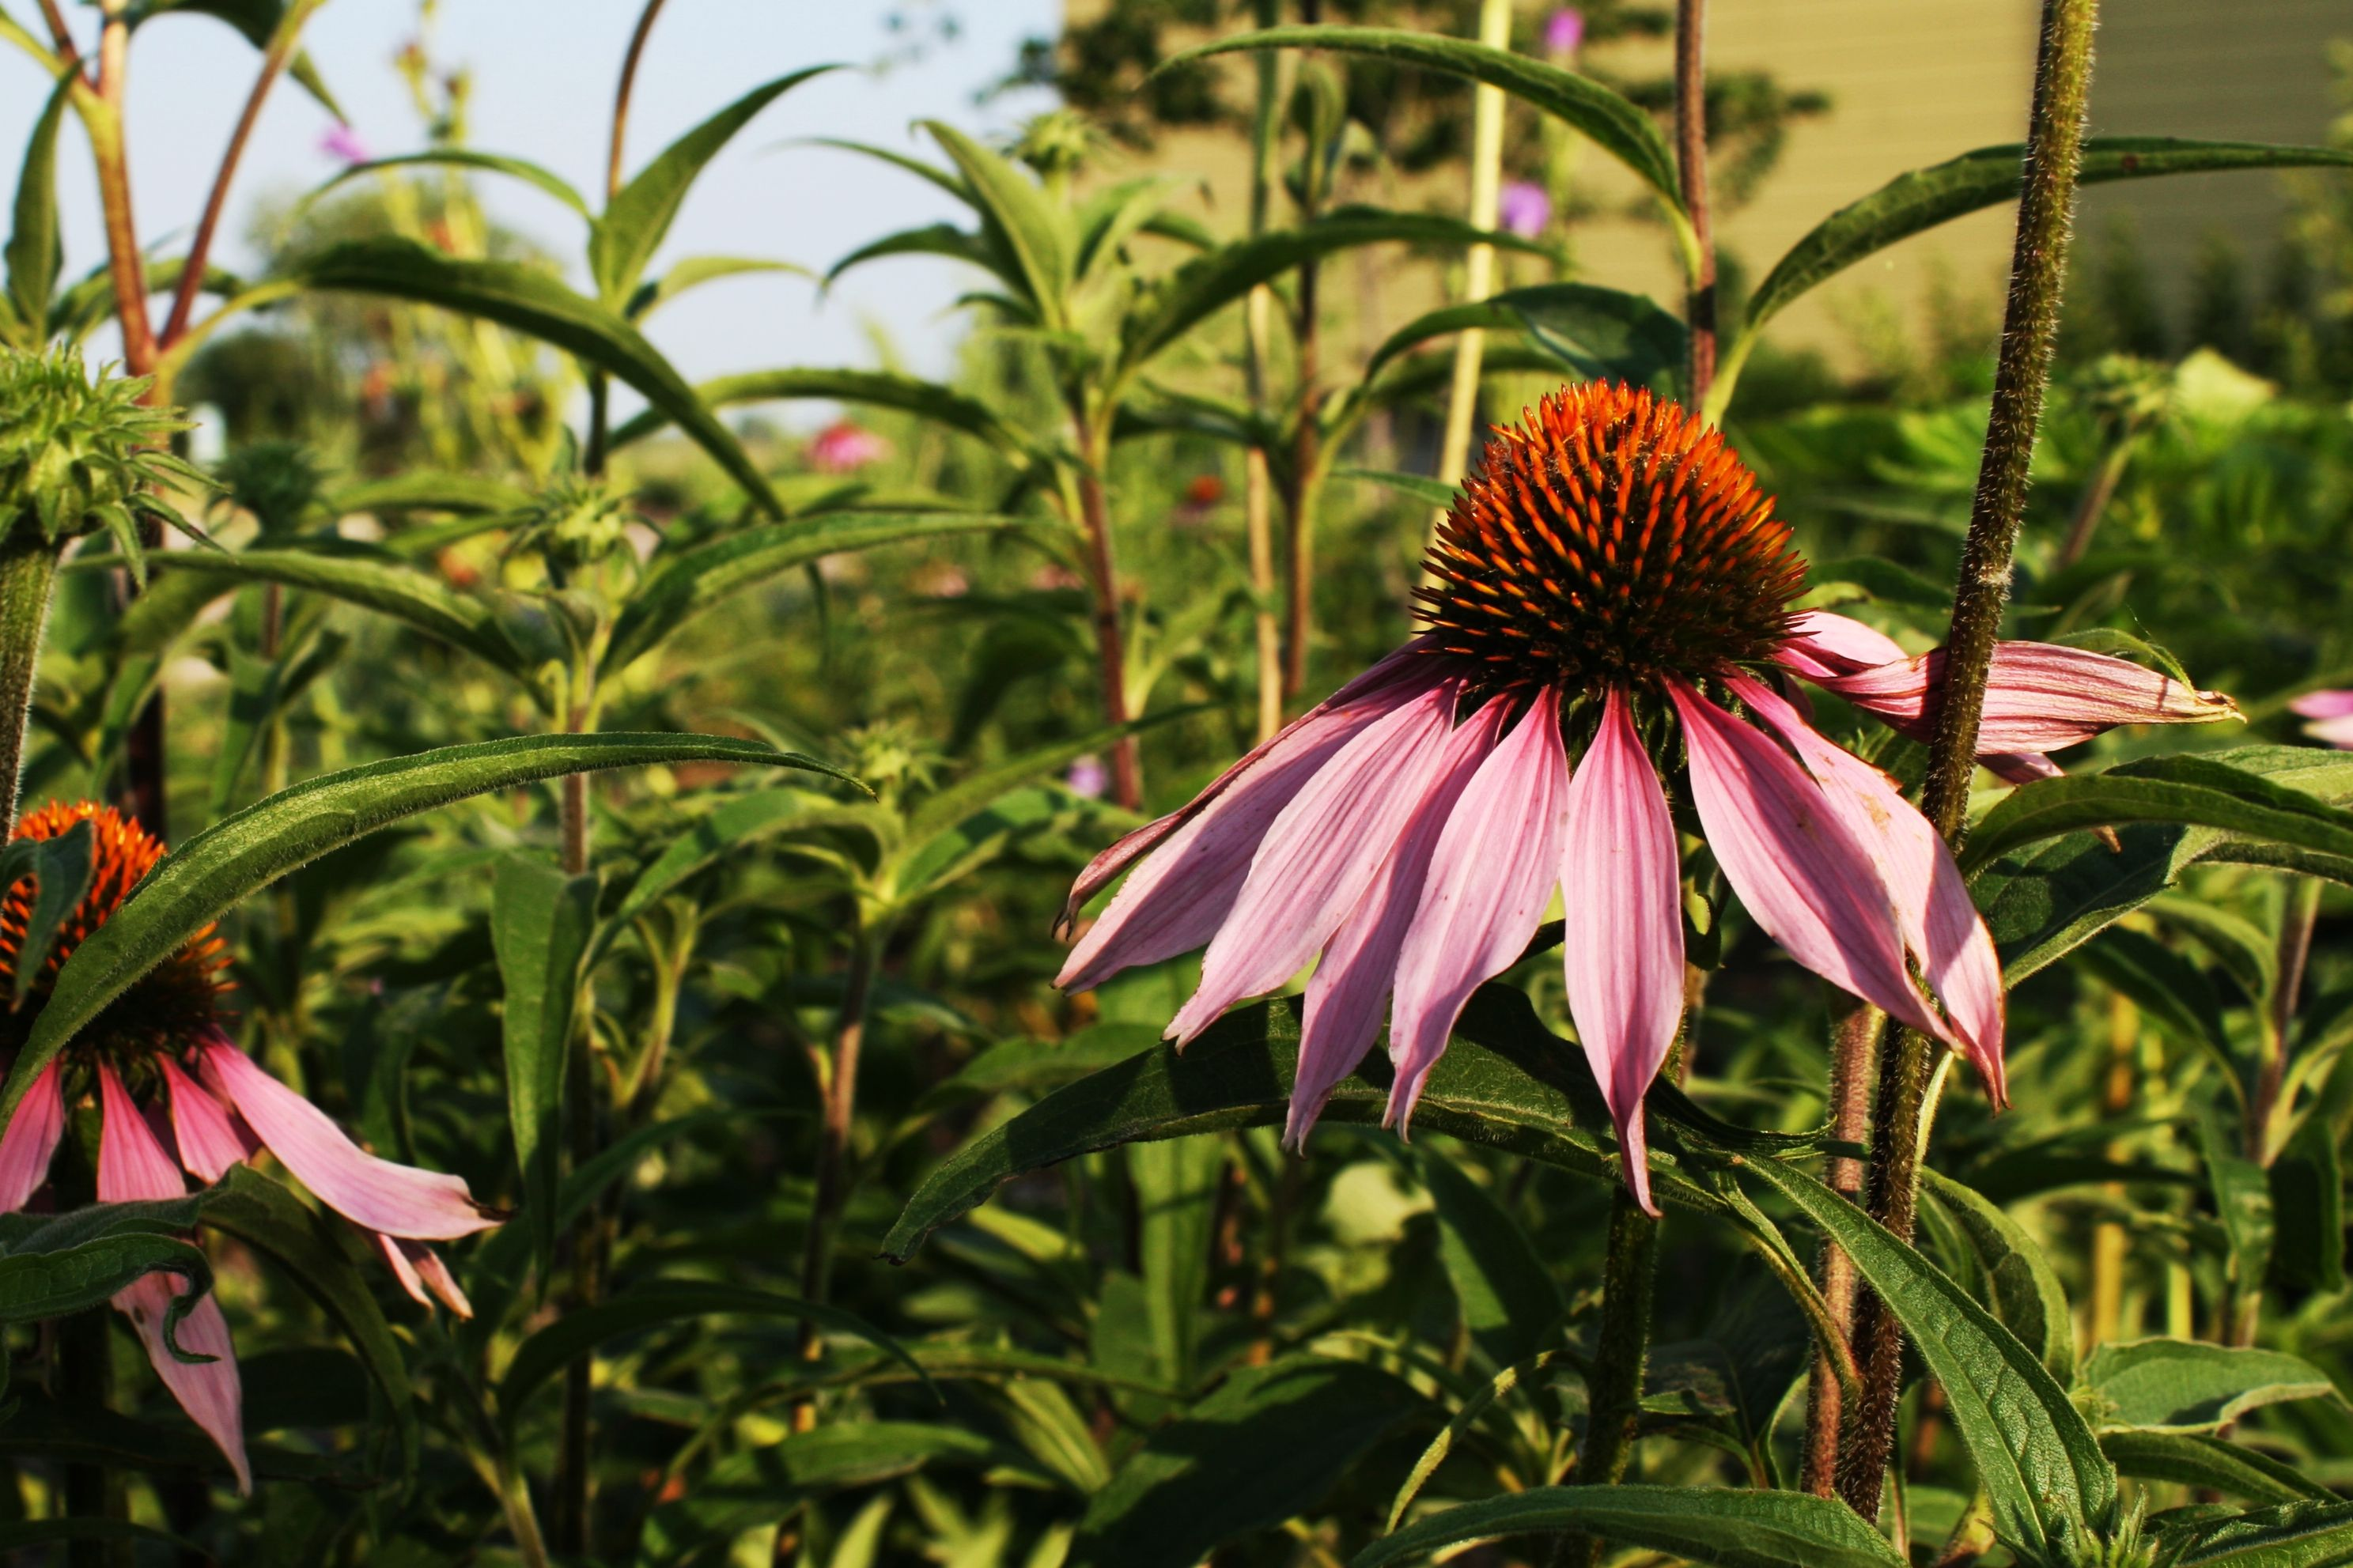 Purple Coneflower (Echinacea purpurea) is a common native plant used in backyard gardens. The attractive purple flowers attracct a variety of pollinators and American Goldfinch will visit the plant to feed on mature seeds. Photo taken by Lane Richter